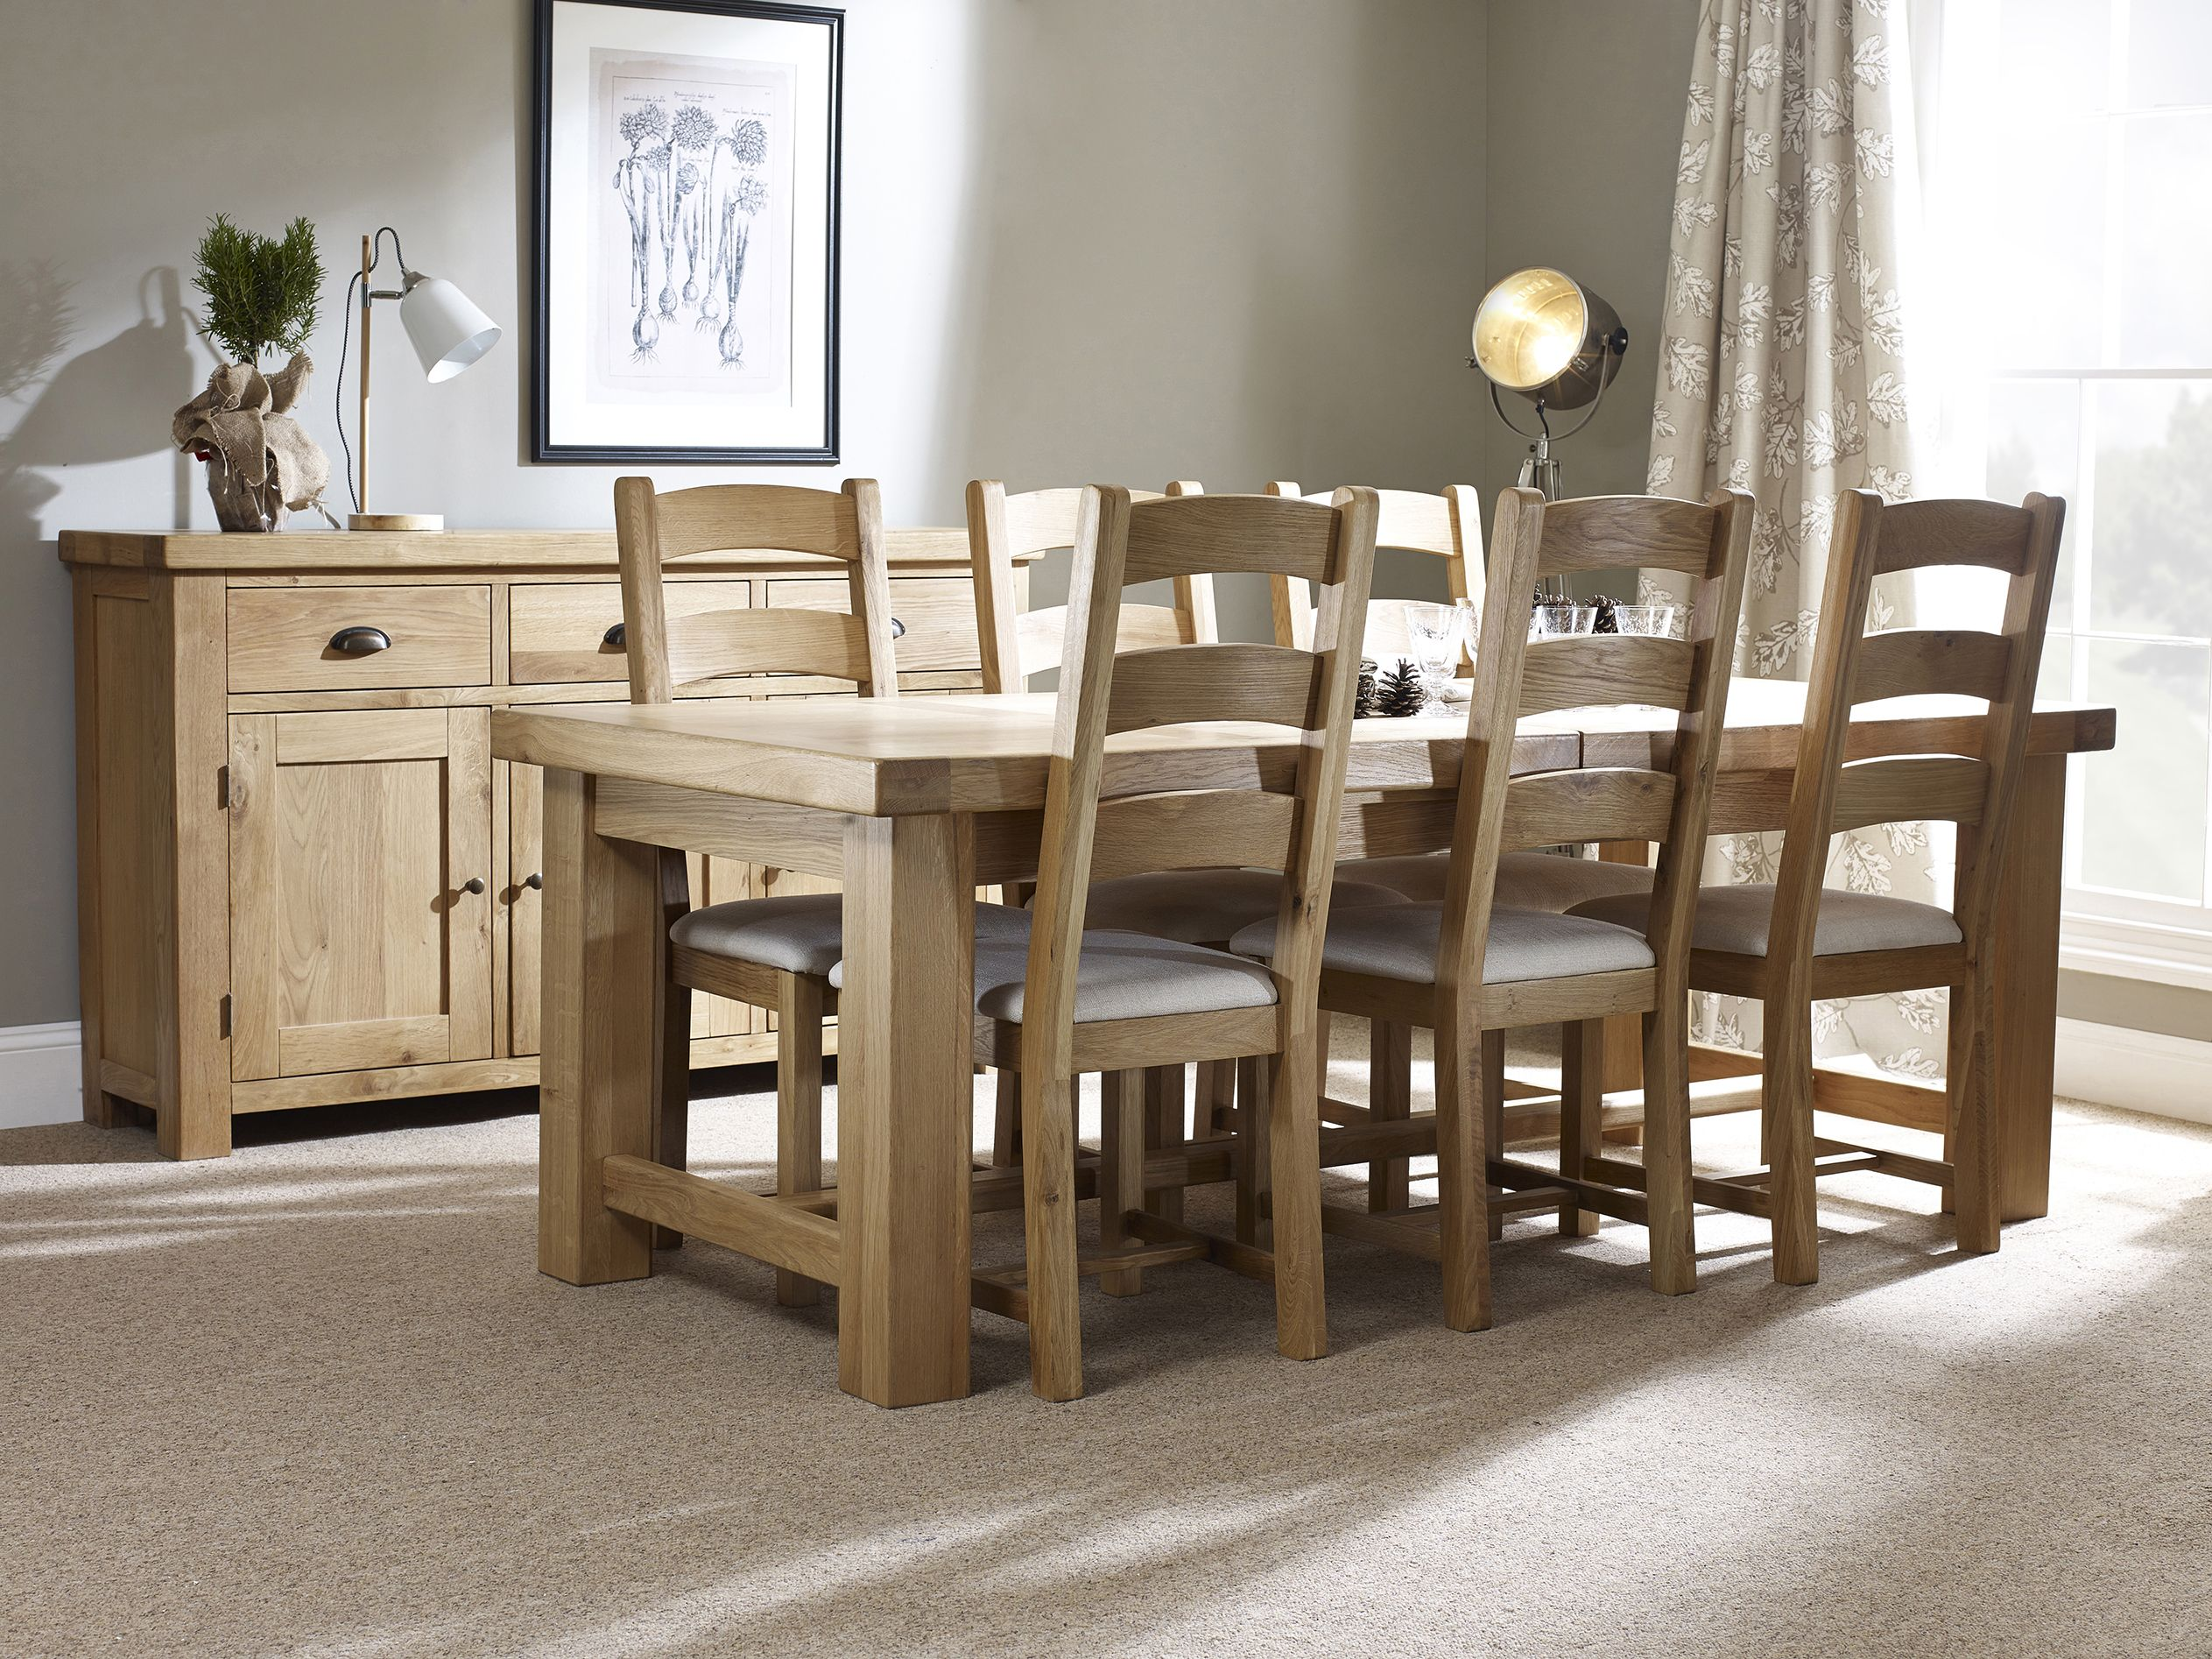 Corndell Fairford Dining Table And Matching Chairs This